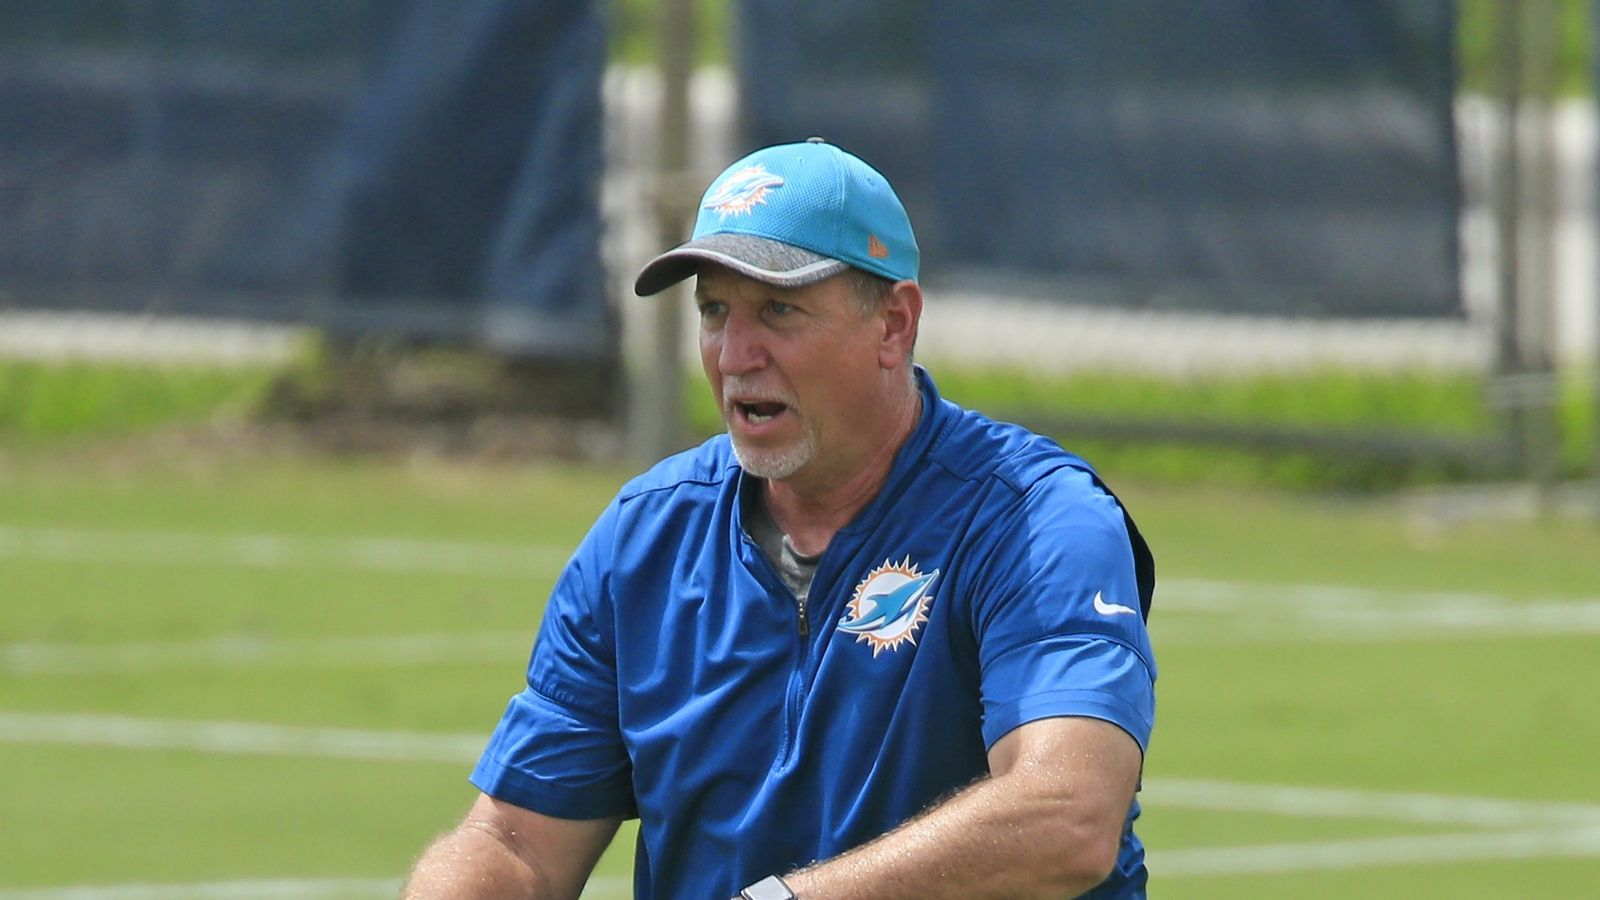 Chris Foerster resigns as Miami Dolphins offensive line ...